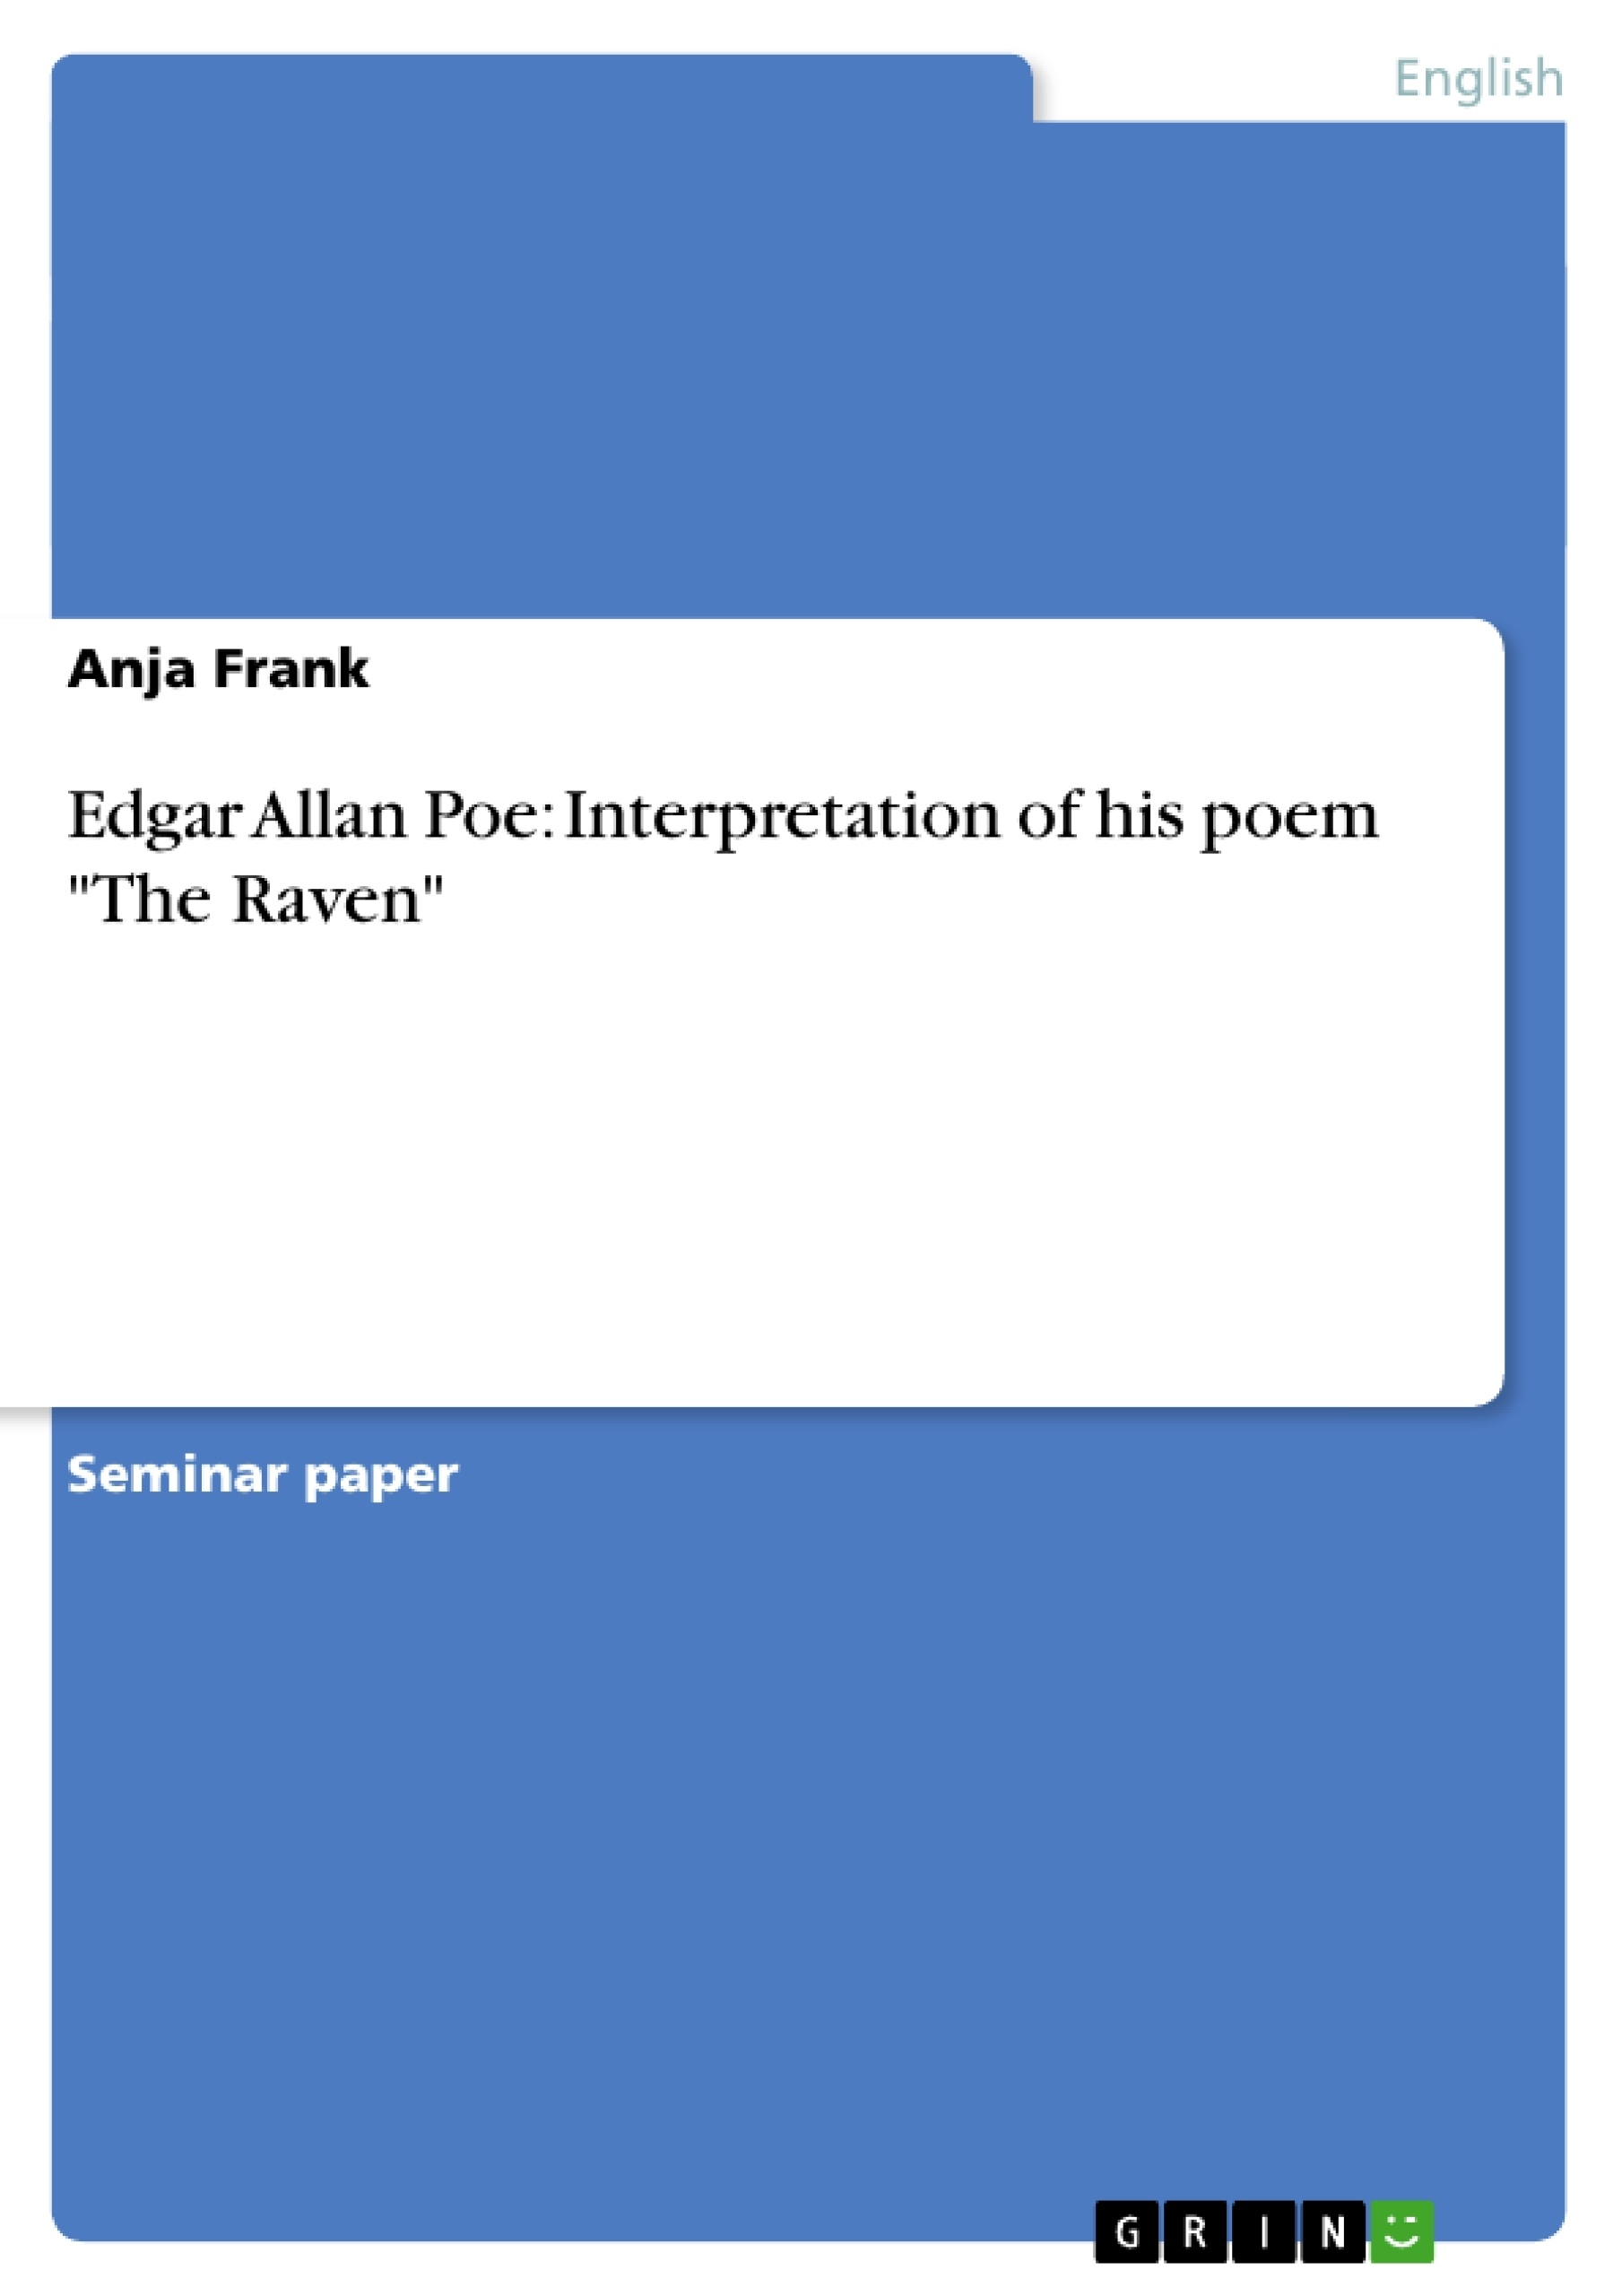 edgar allan poe interpretation of his poem the raven publish upload your own papers earn money and win an iphone 7